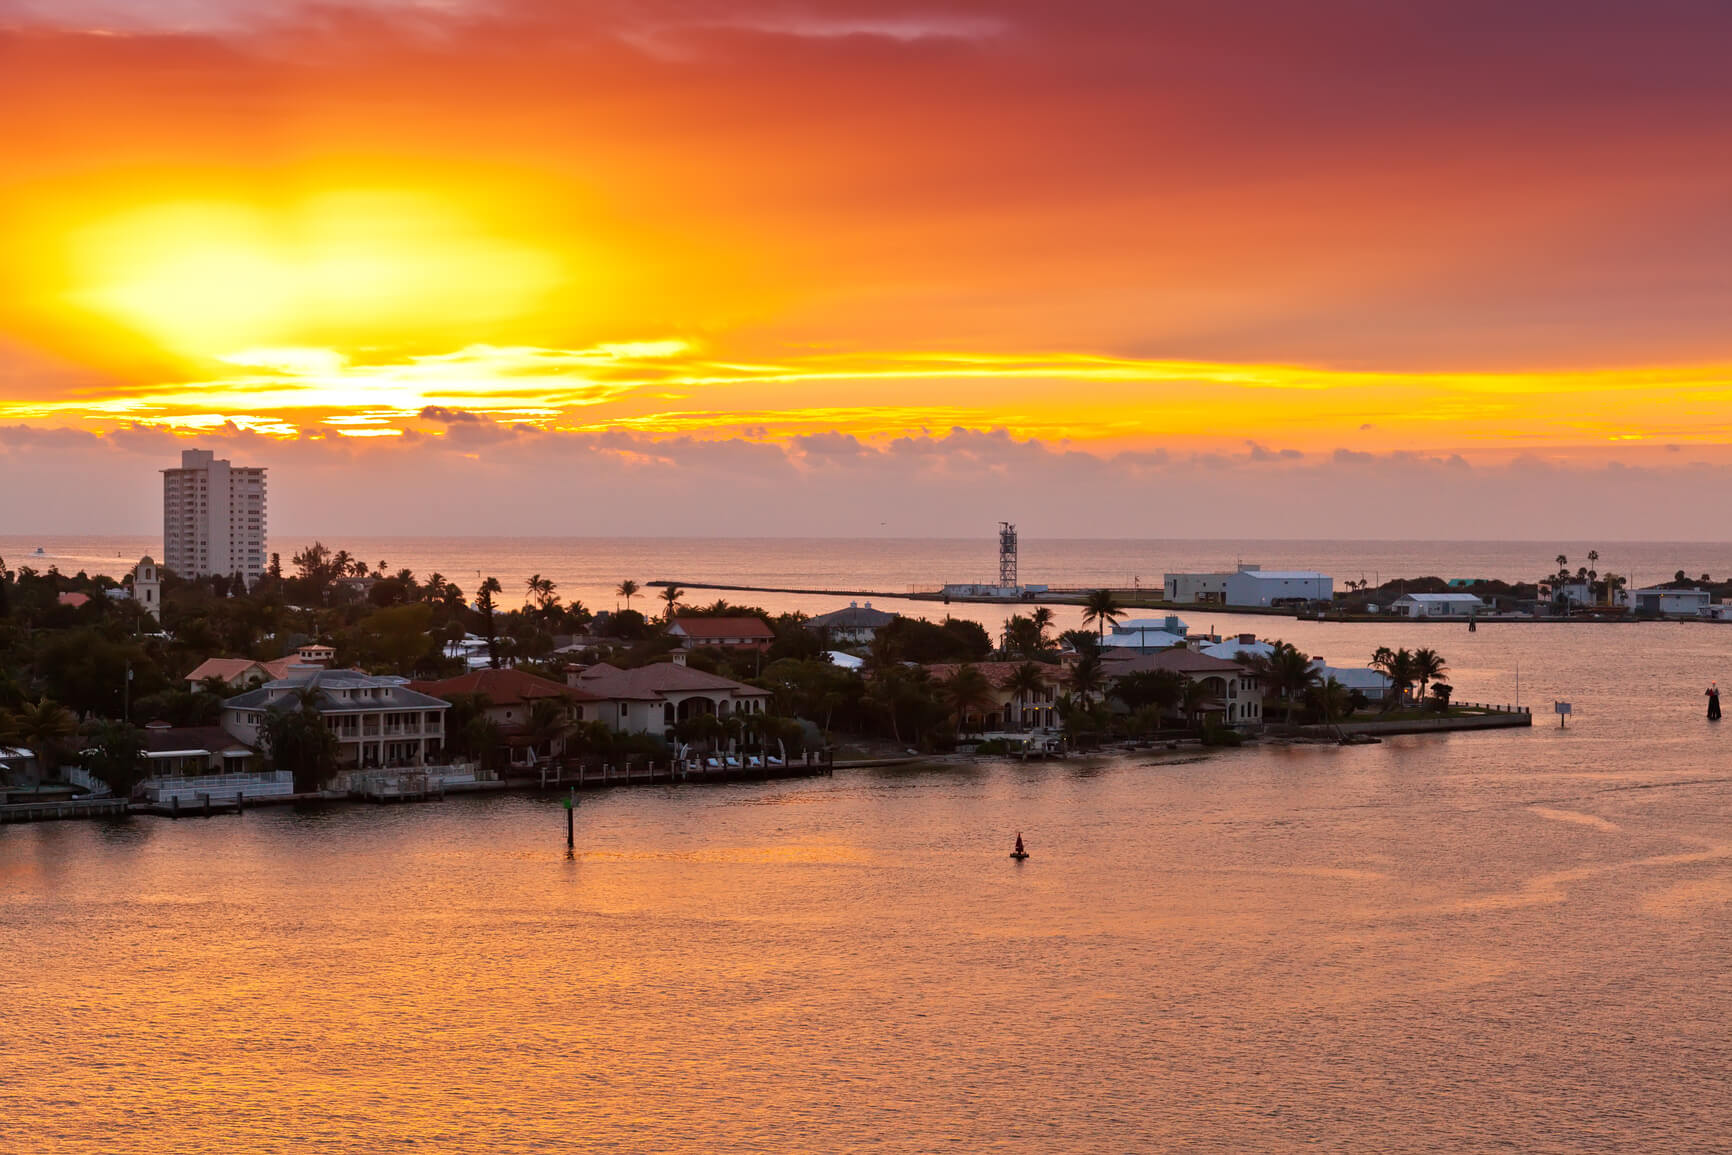 Non-stop from Boston to Fort Lauderdale (& vice versa) for only $96 roundtrip (Sep-Dec dates)